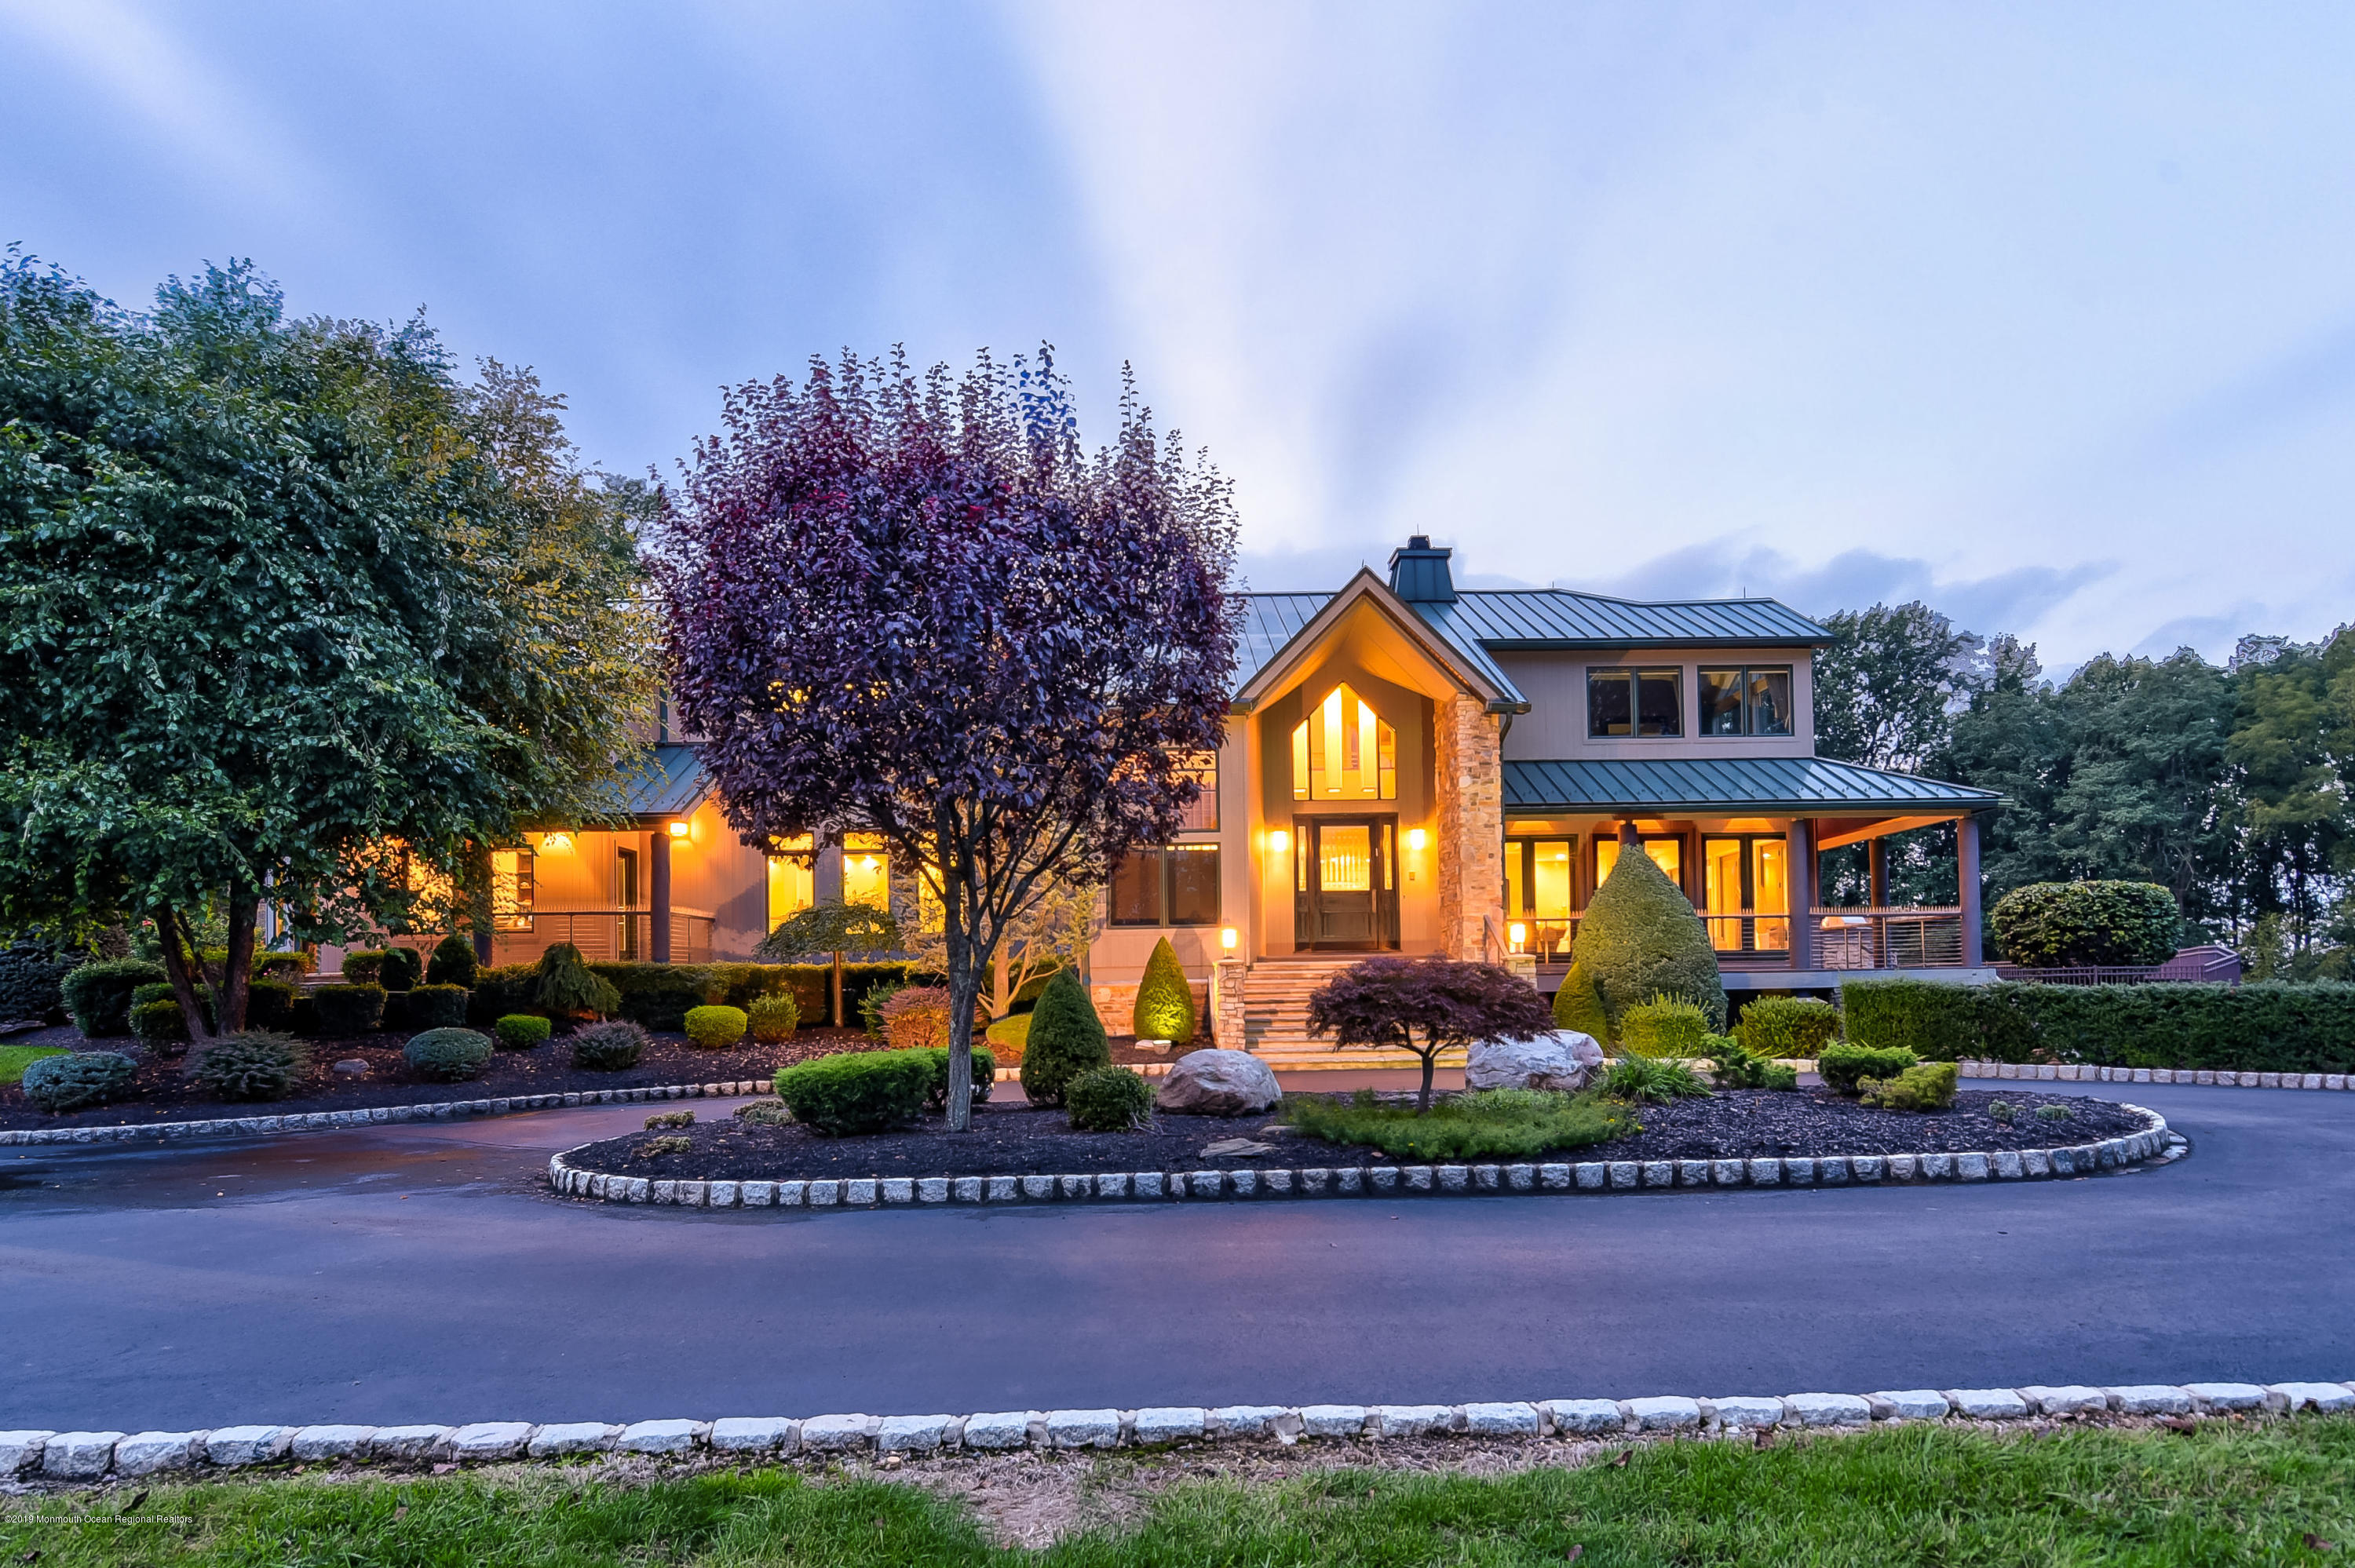 Photo of 17 Summer House Hill Road, Holmdel, NJ 07733